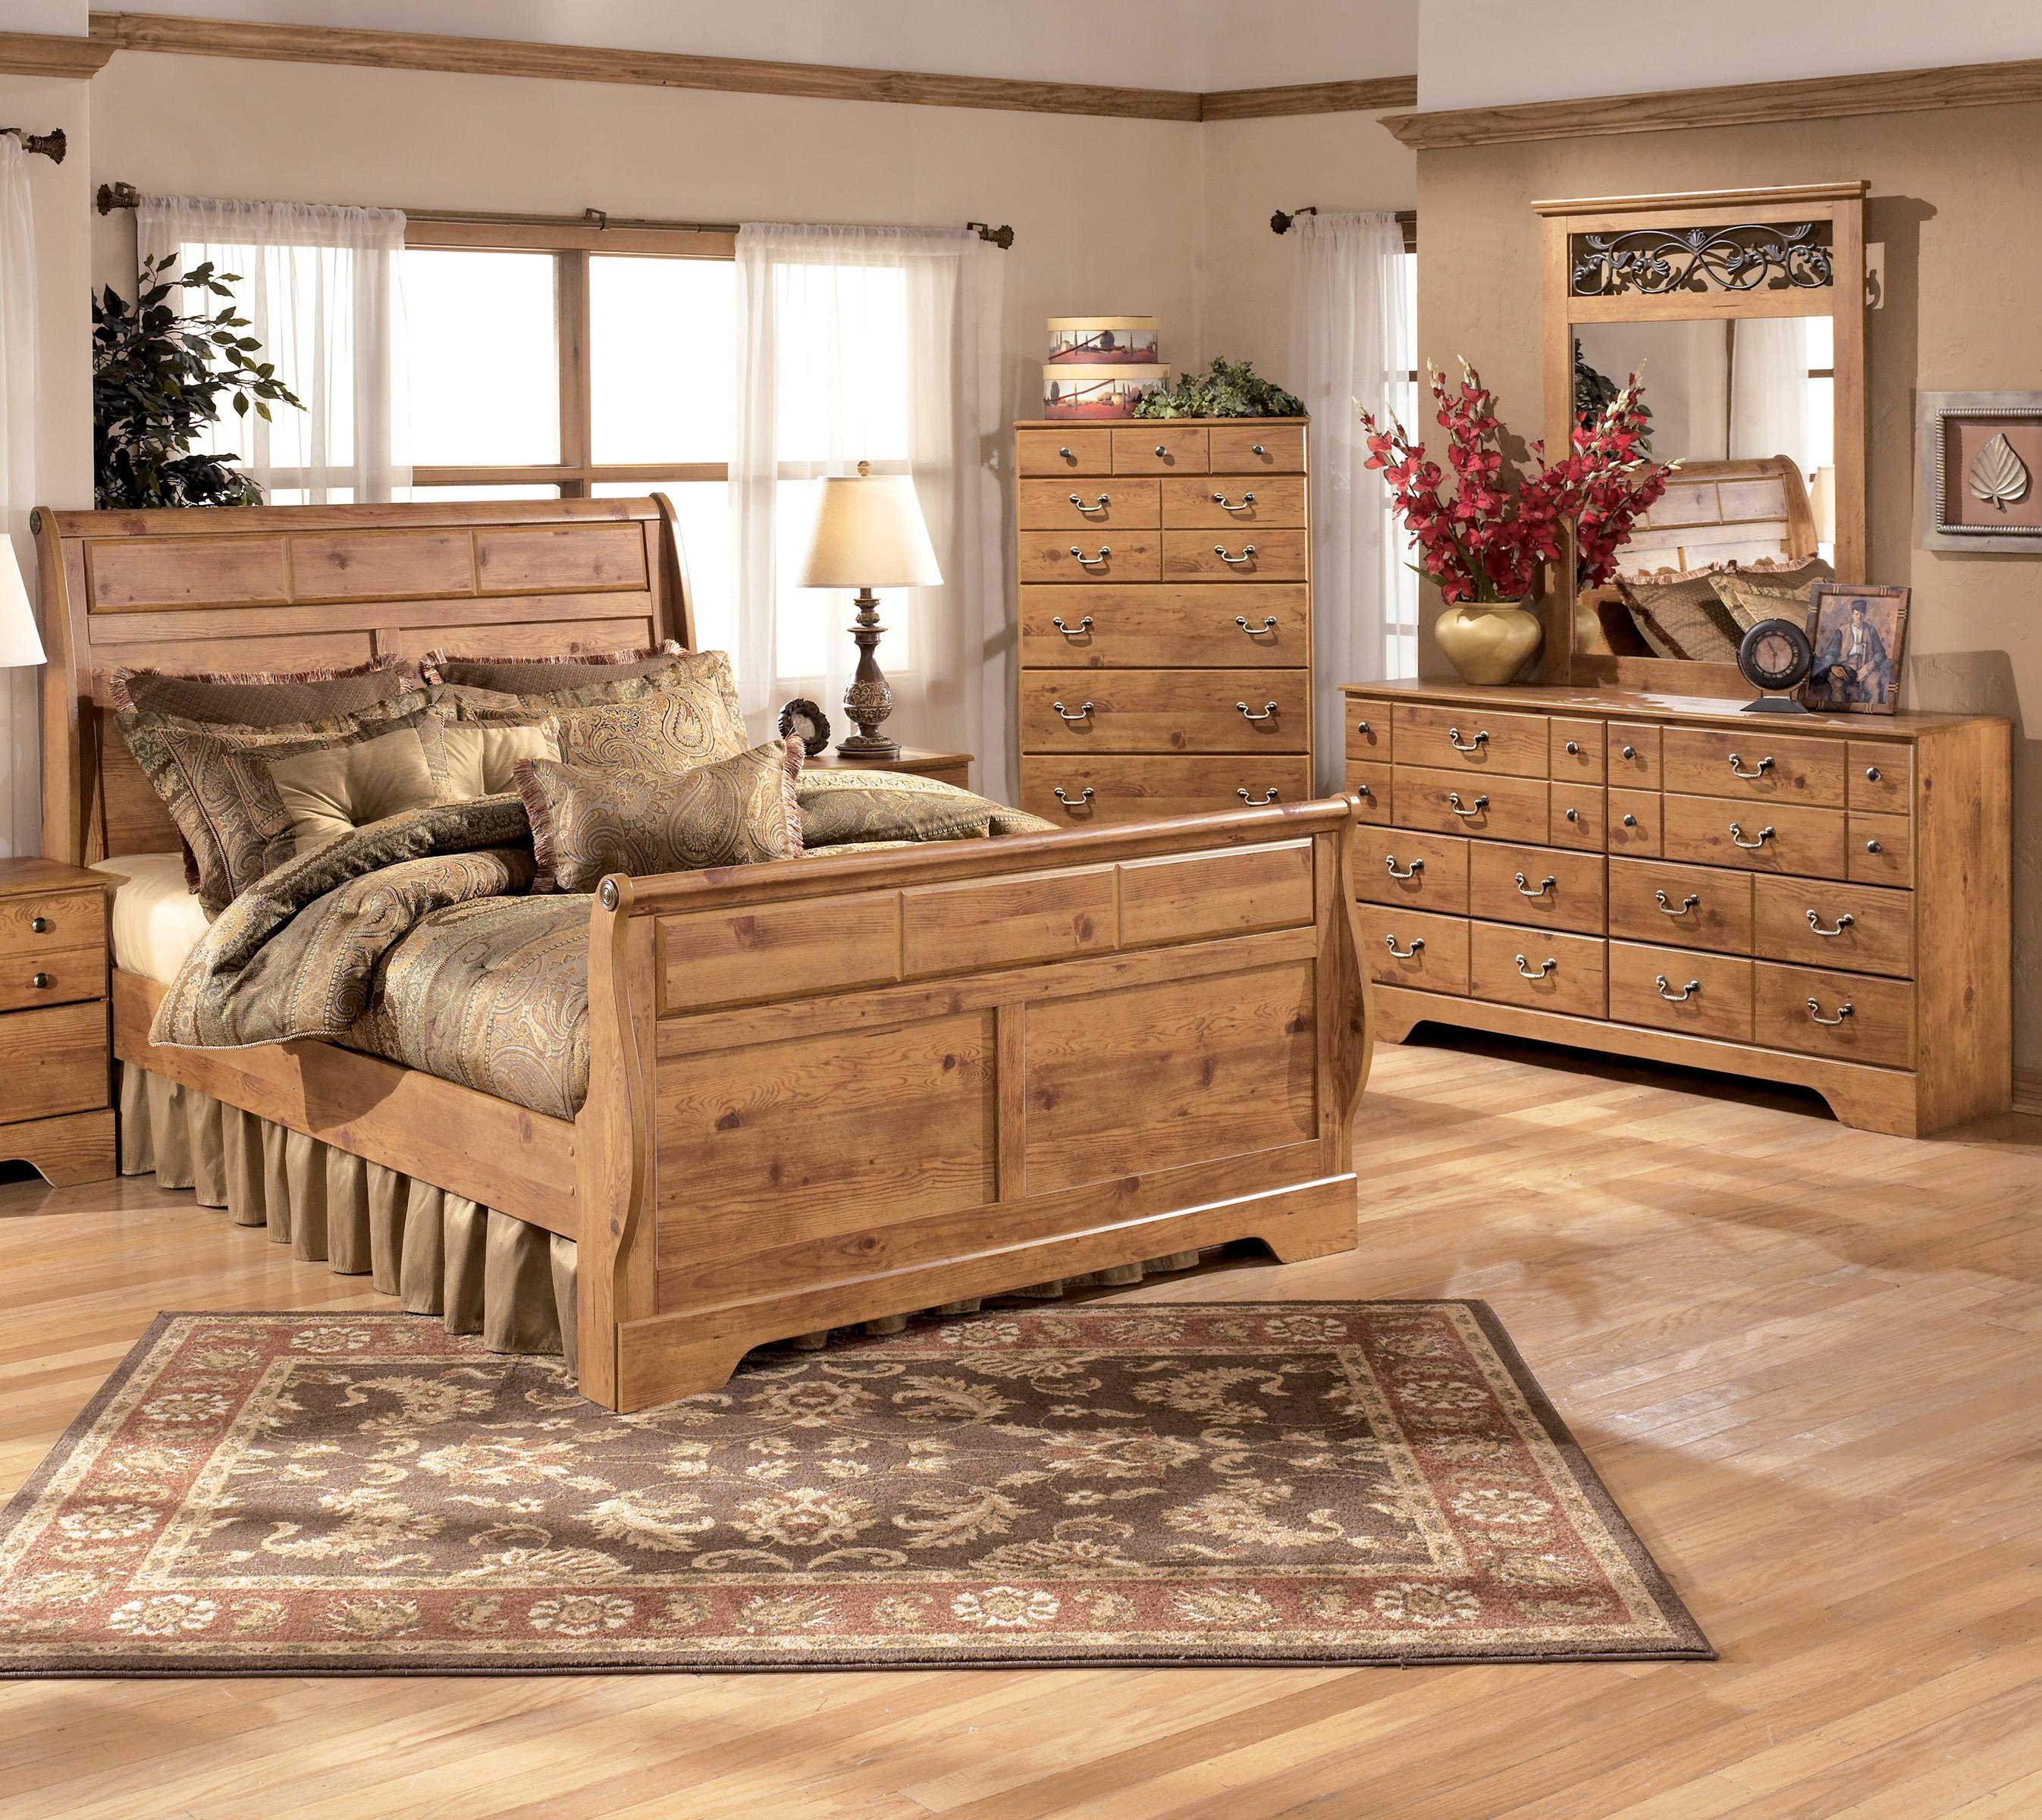 Signature Design by Ashley Bittersweet 4 Piece King Sleigh Bedroom Group - Item Number: B219 K 4 Piece